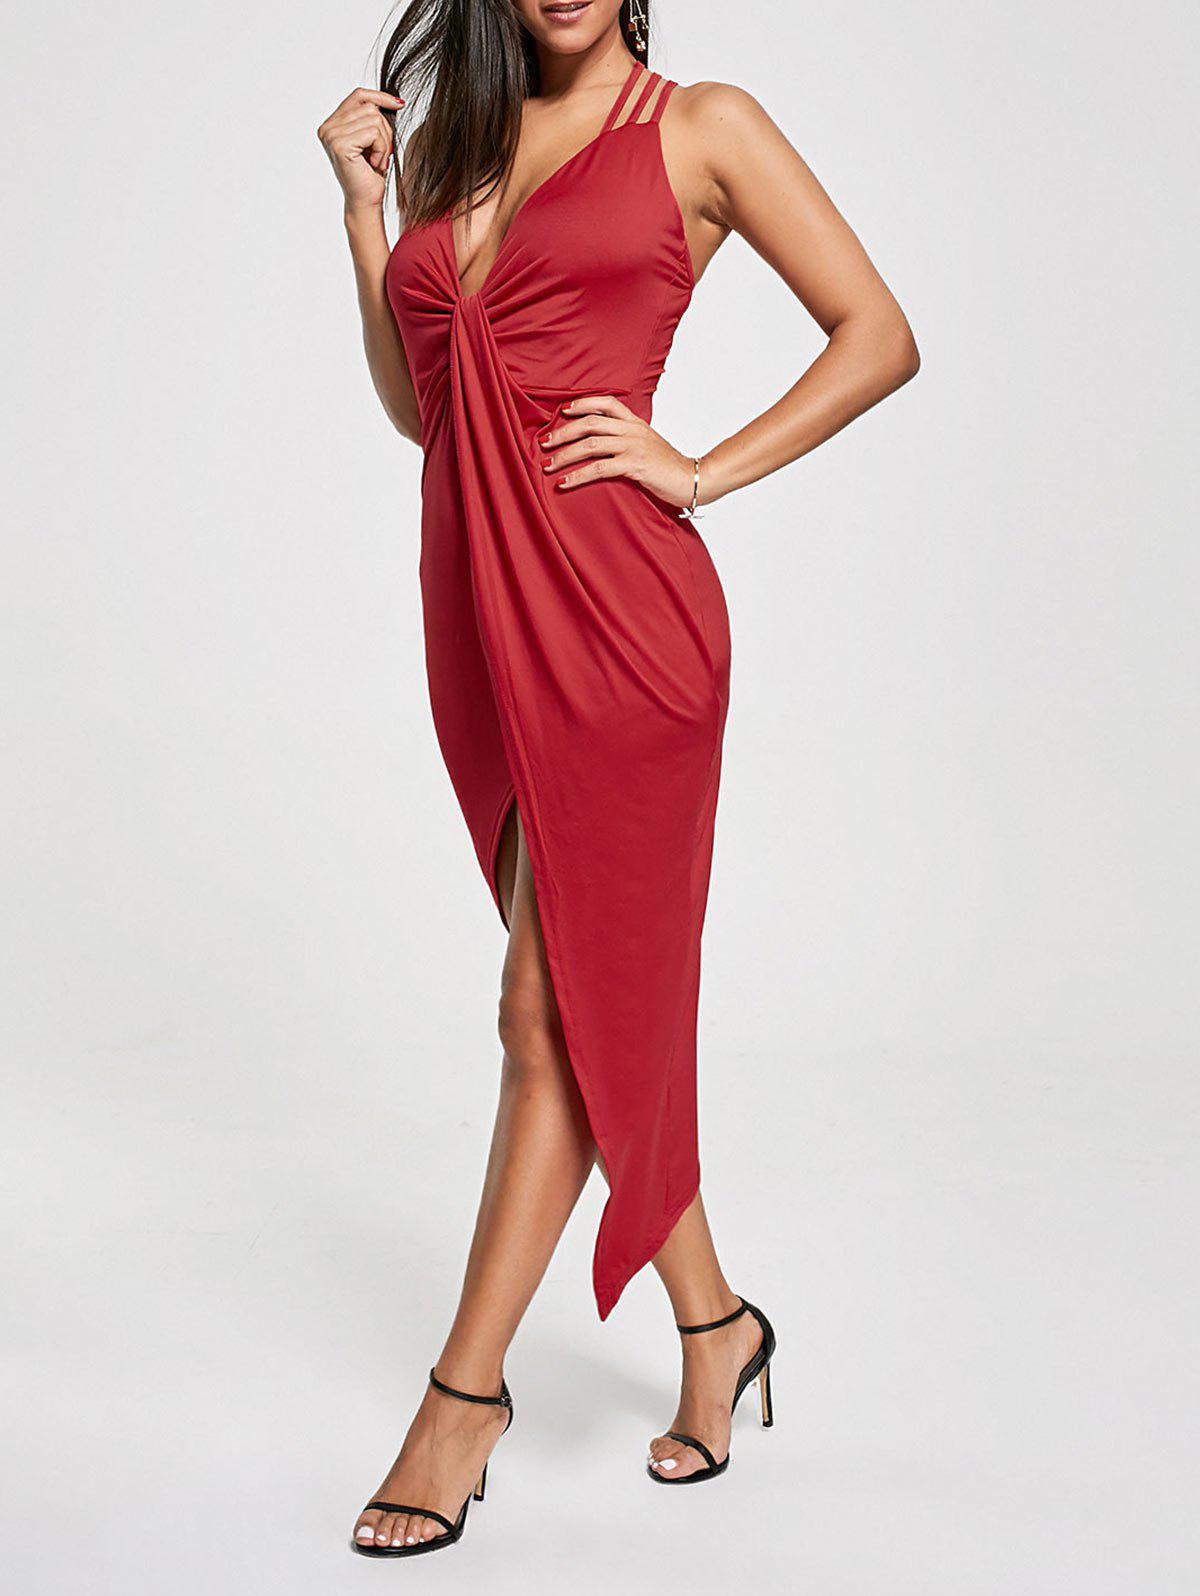 Criss Cross Cutout Front Twist Asymmetric Club Dress - RED S